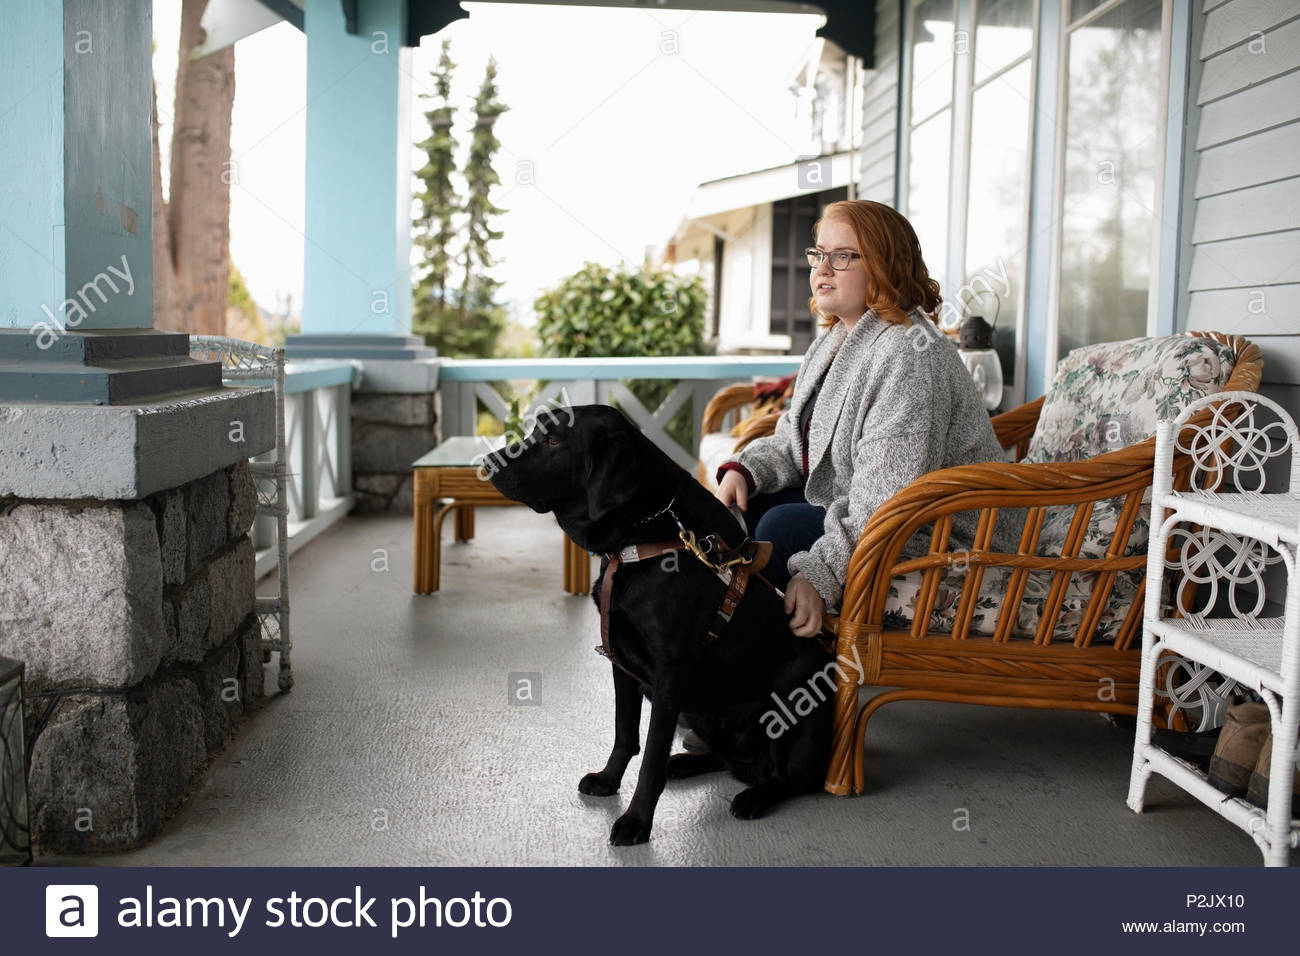 Visually impaired woman sitting with seeing eye dog on porch - Stock Image